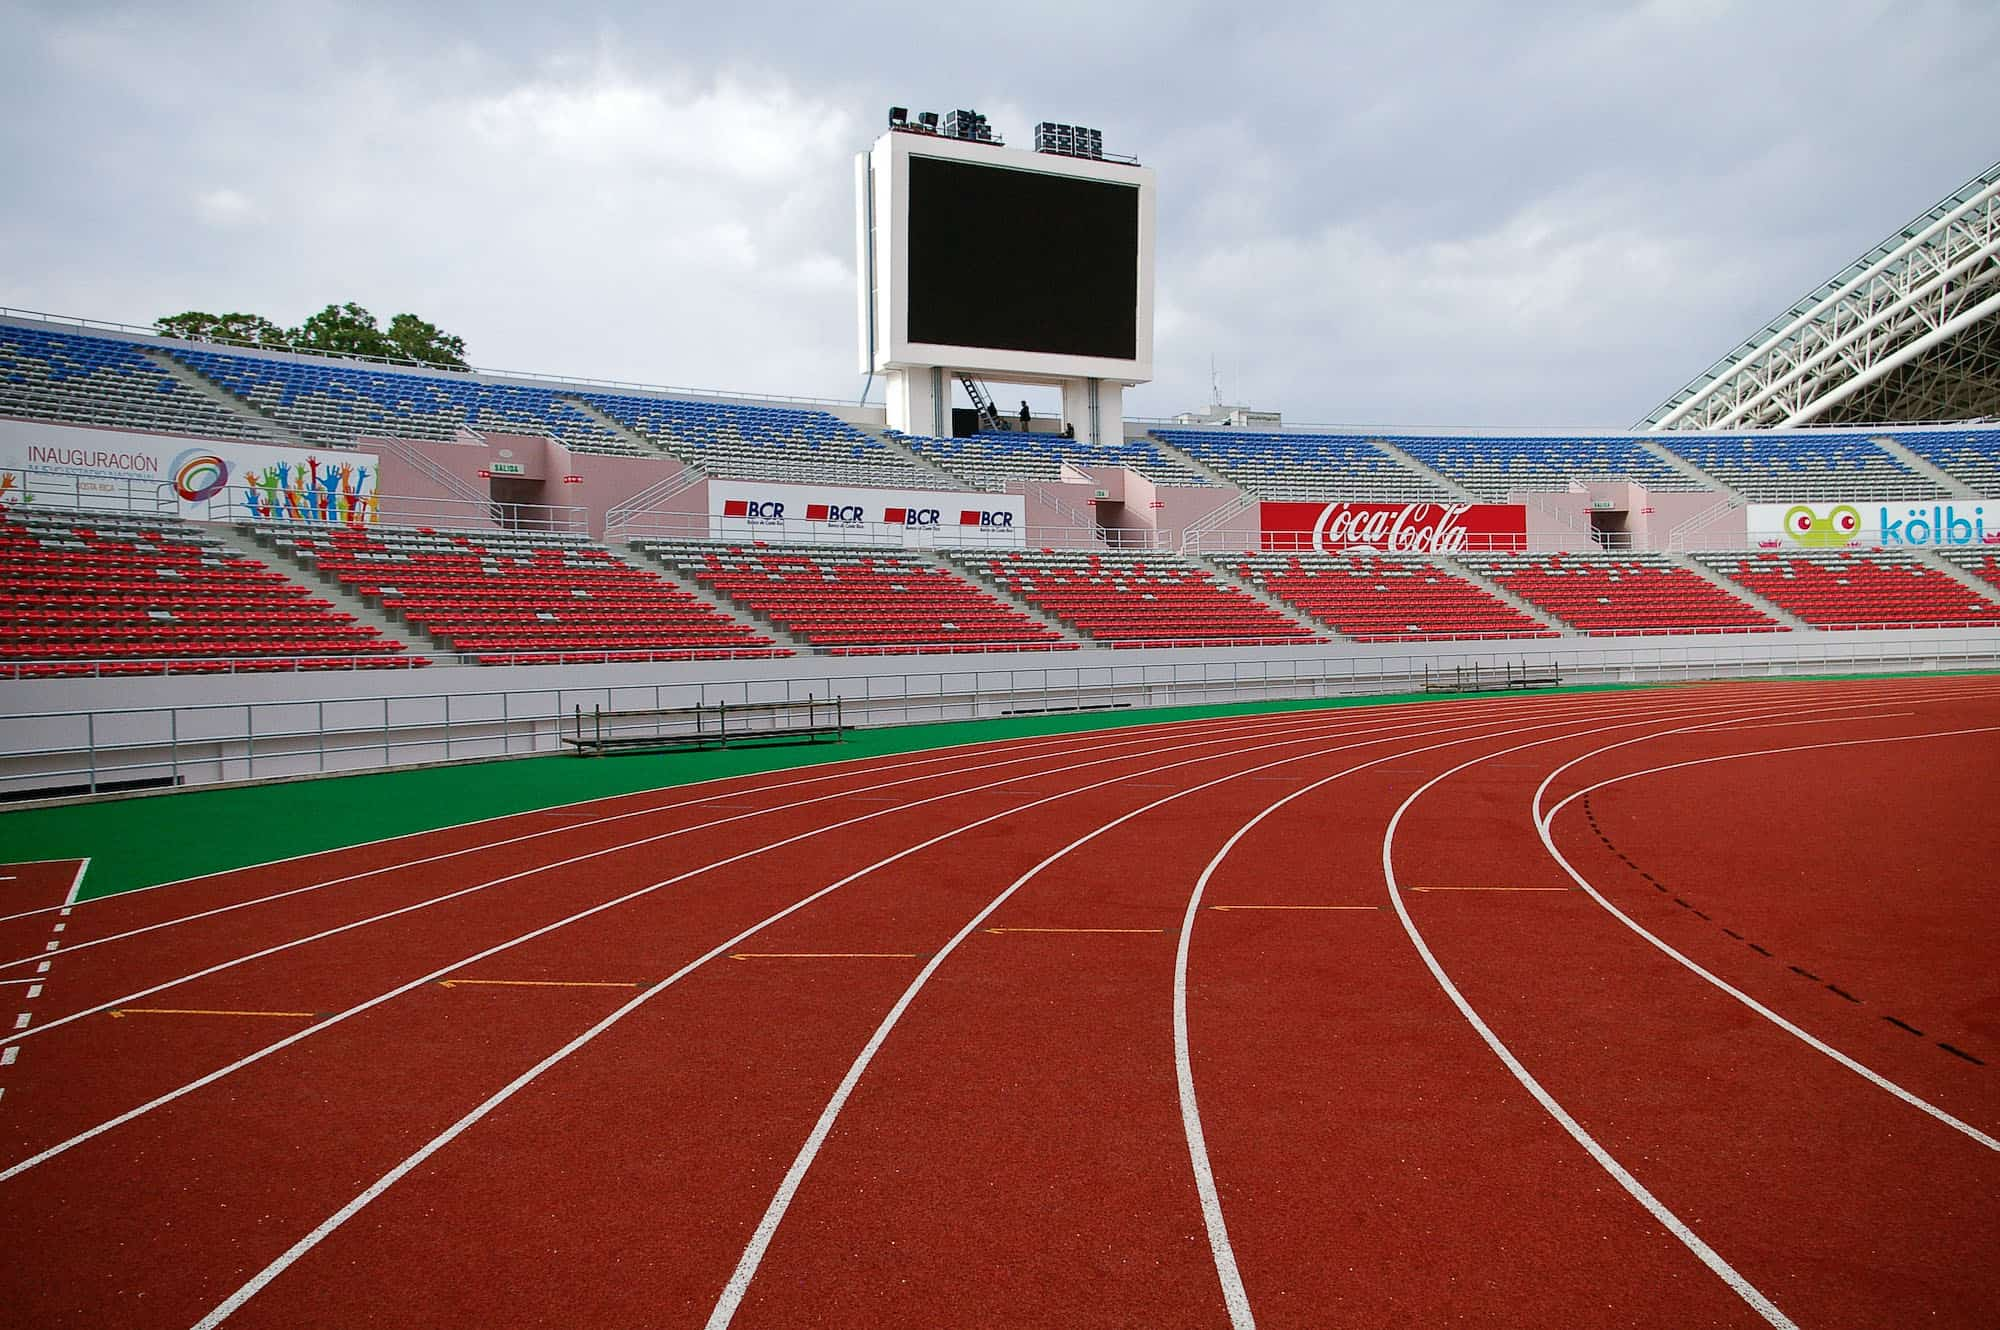 As Costa Rica gets set to host the NACAC track and field championships on Friday, the sport has been rocked by allegations of drug use.